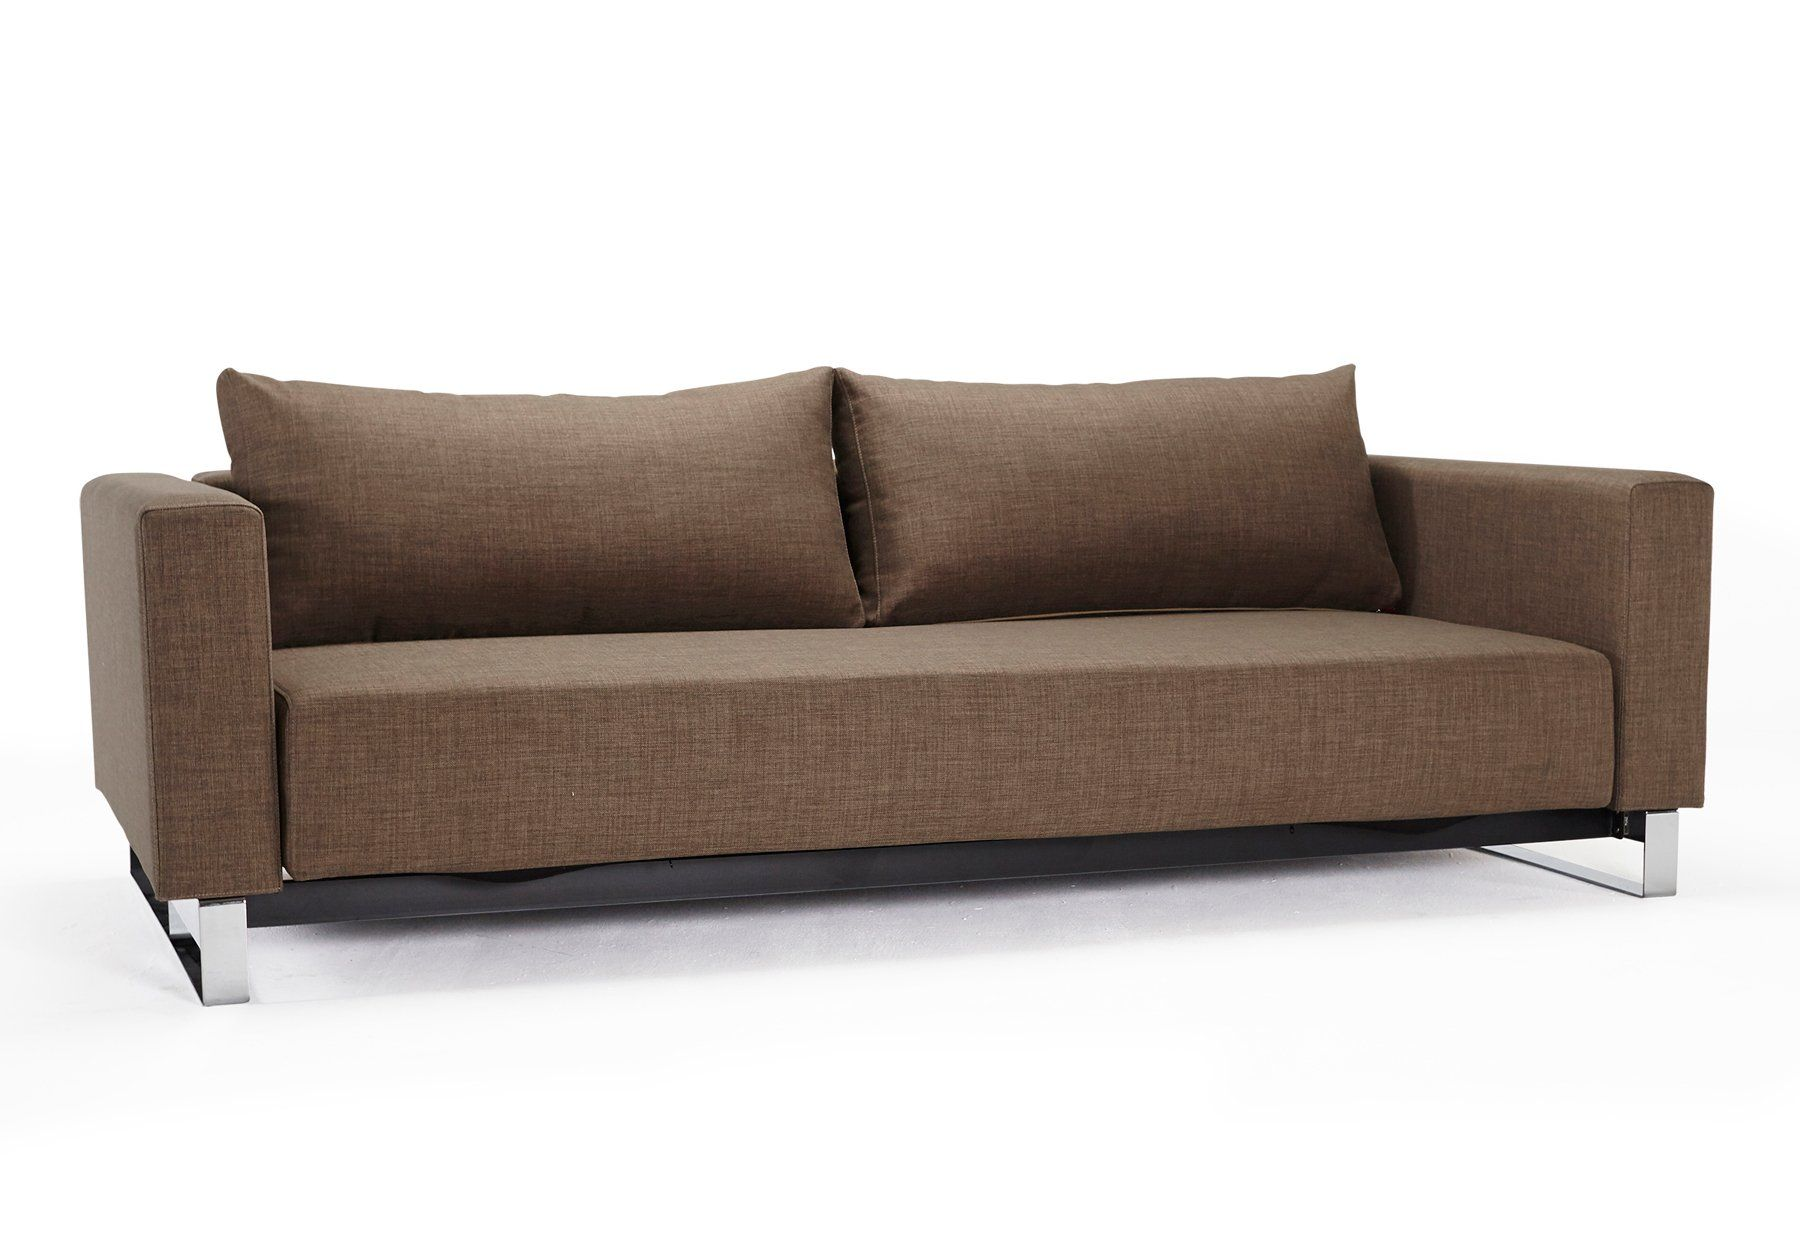 Picture of: Cassius Sleek Excess Lounger Sofa Bed Honormill Furniture